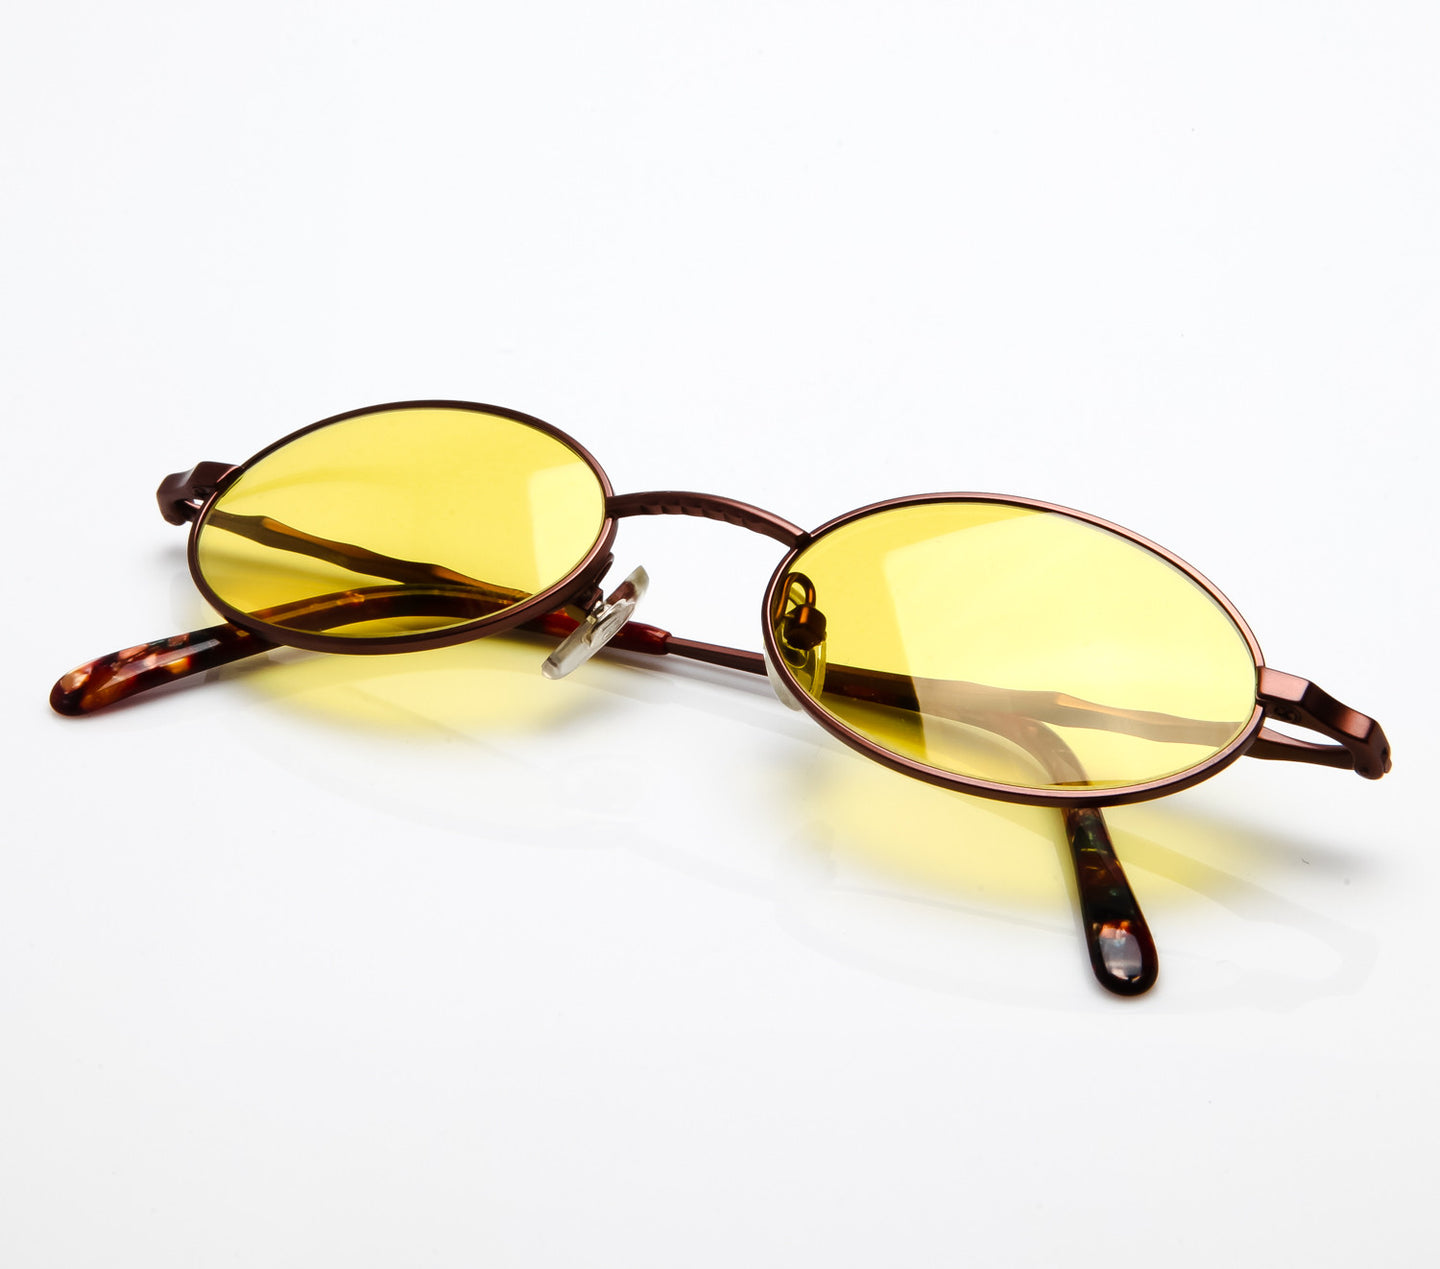 Paolo Gucci 7445 HINI 21K Gold Plated, Paolo Gucci , glasses frames, eyeglasses online, eyeglass frames, mens glasses, womens glasses, buy glasses online, designer eyeglasses, vintage sunglasses, retro sunglasses, vintage glasses, sunglass, eyeglass, glasses, lens, vintage frames company, vf